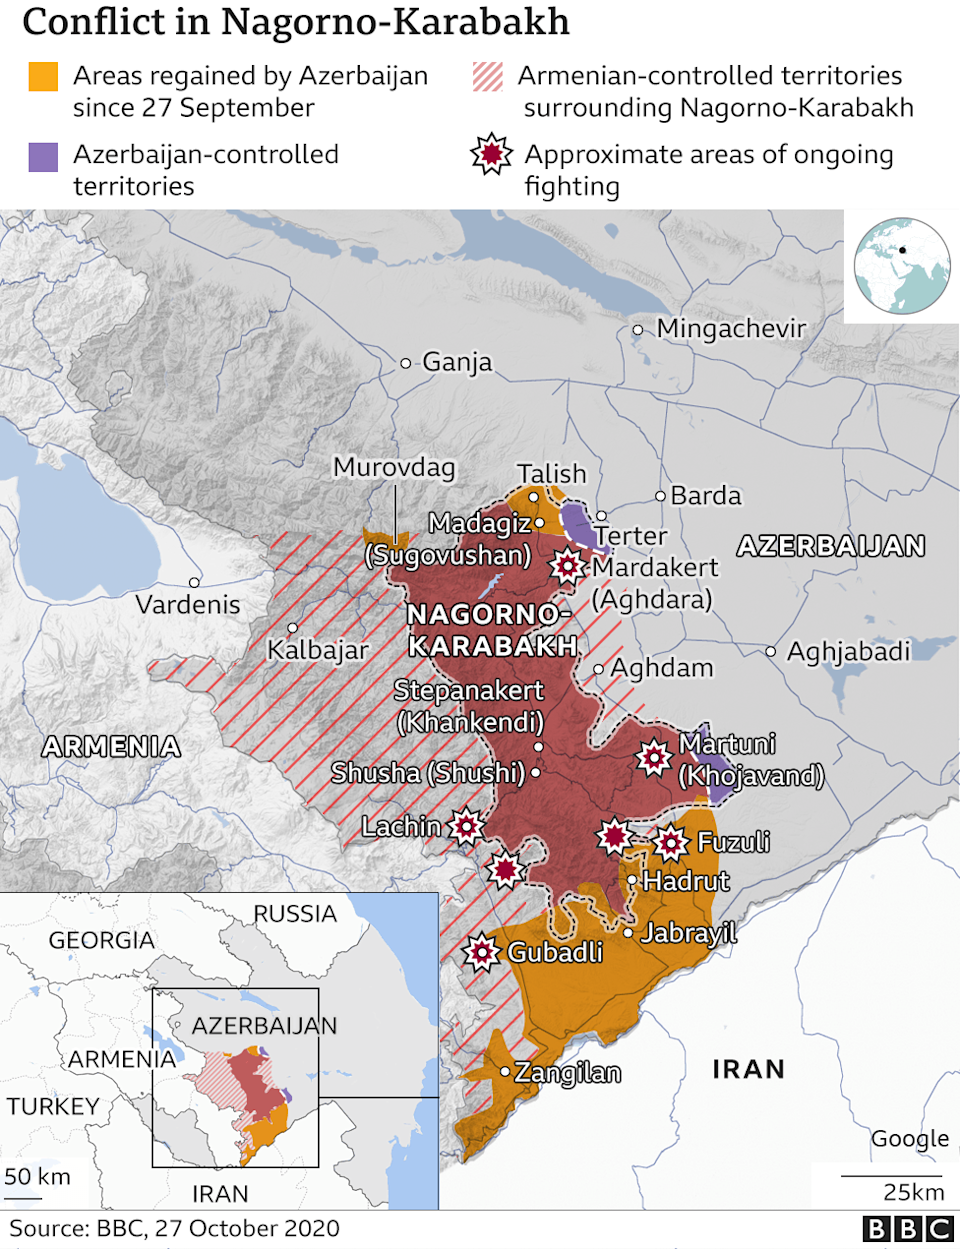 A map showing where fighting has been taking place in and around the disputed territory of Nagorno-Karabakh